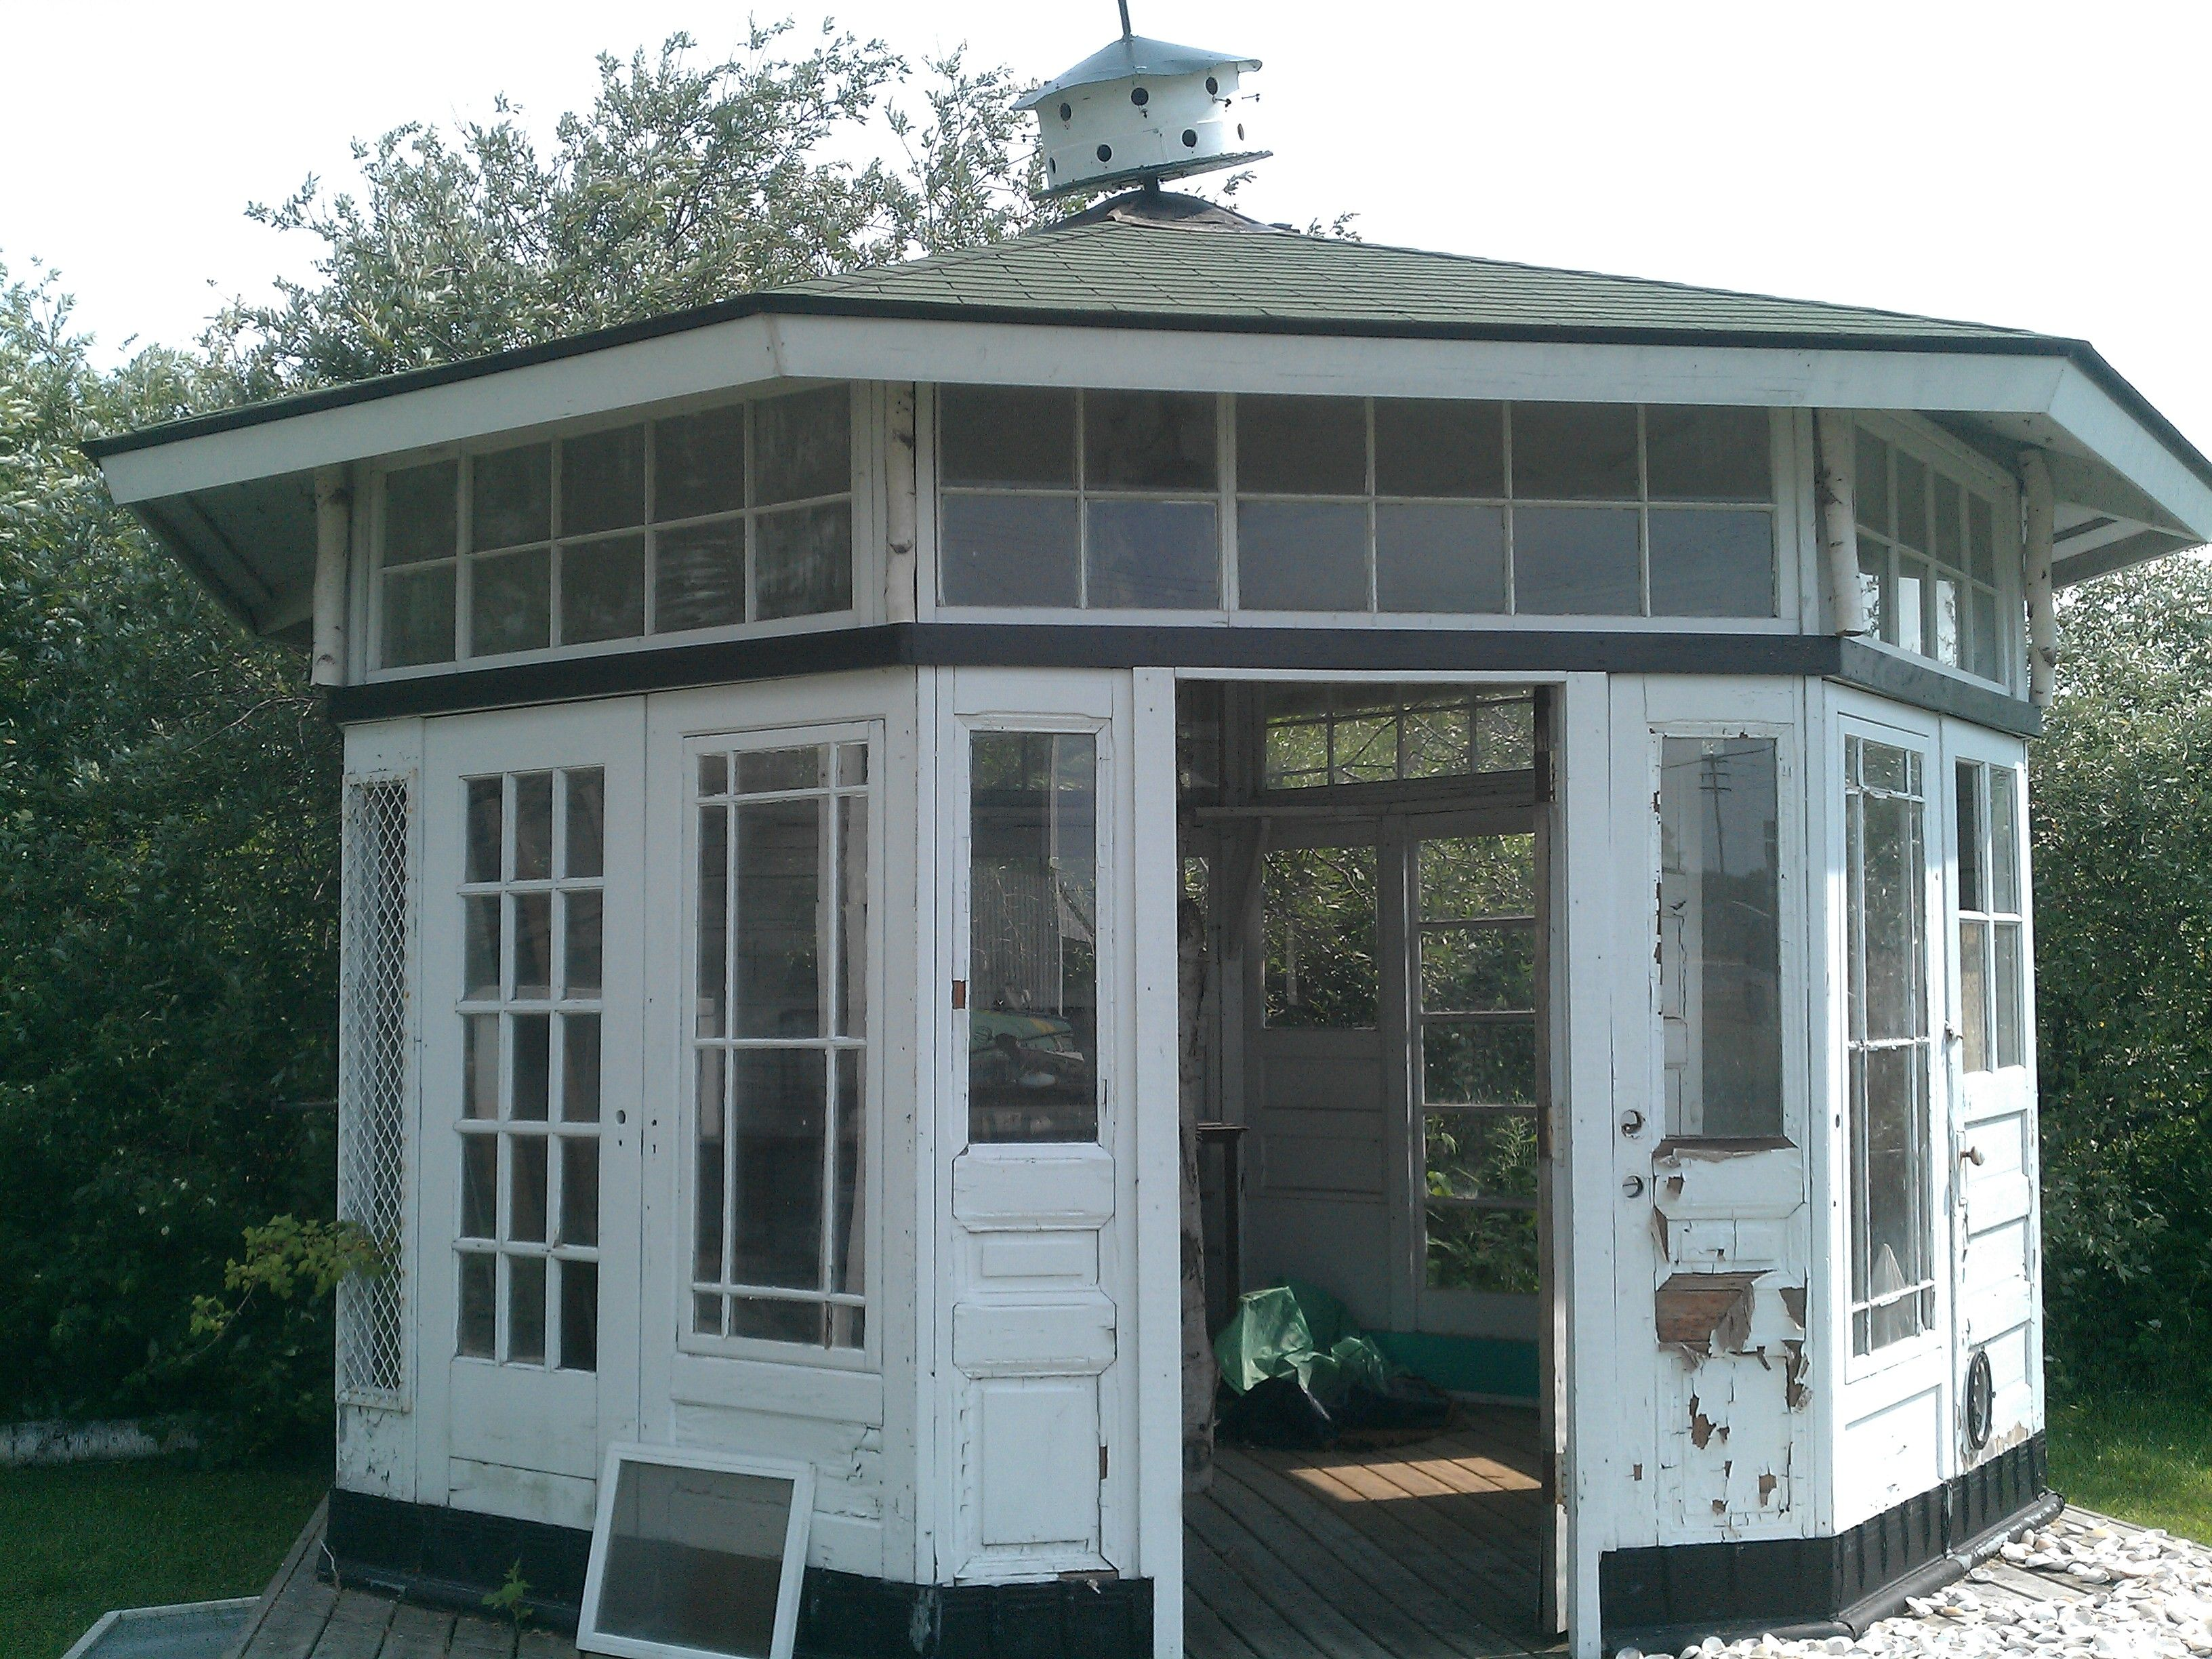 garden house made from salvage by bob thomas at his store monumental finds - Garden Sheds Michigan